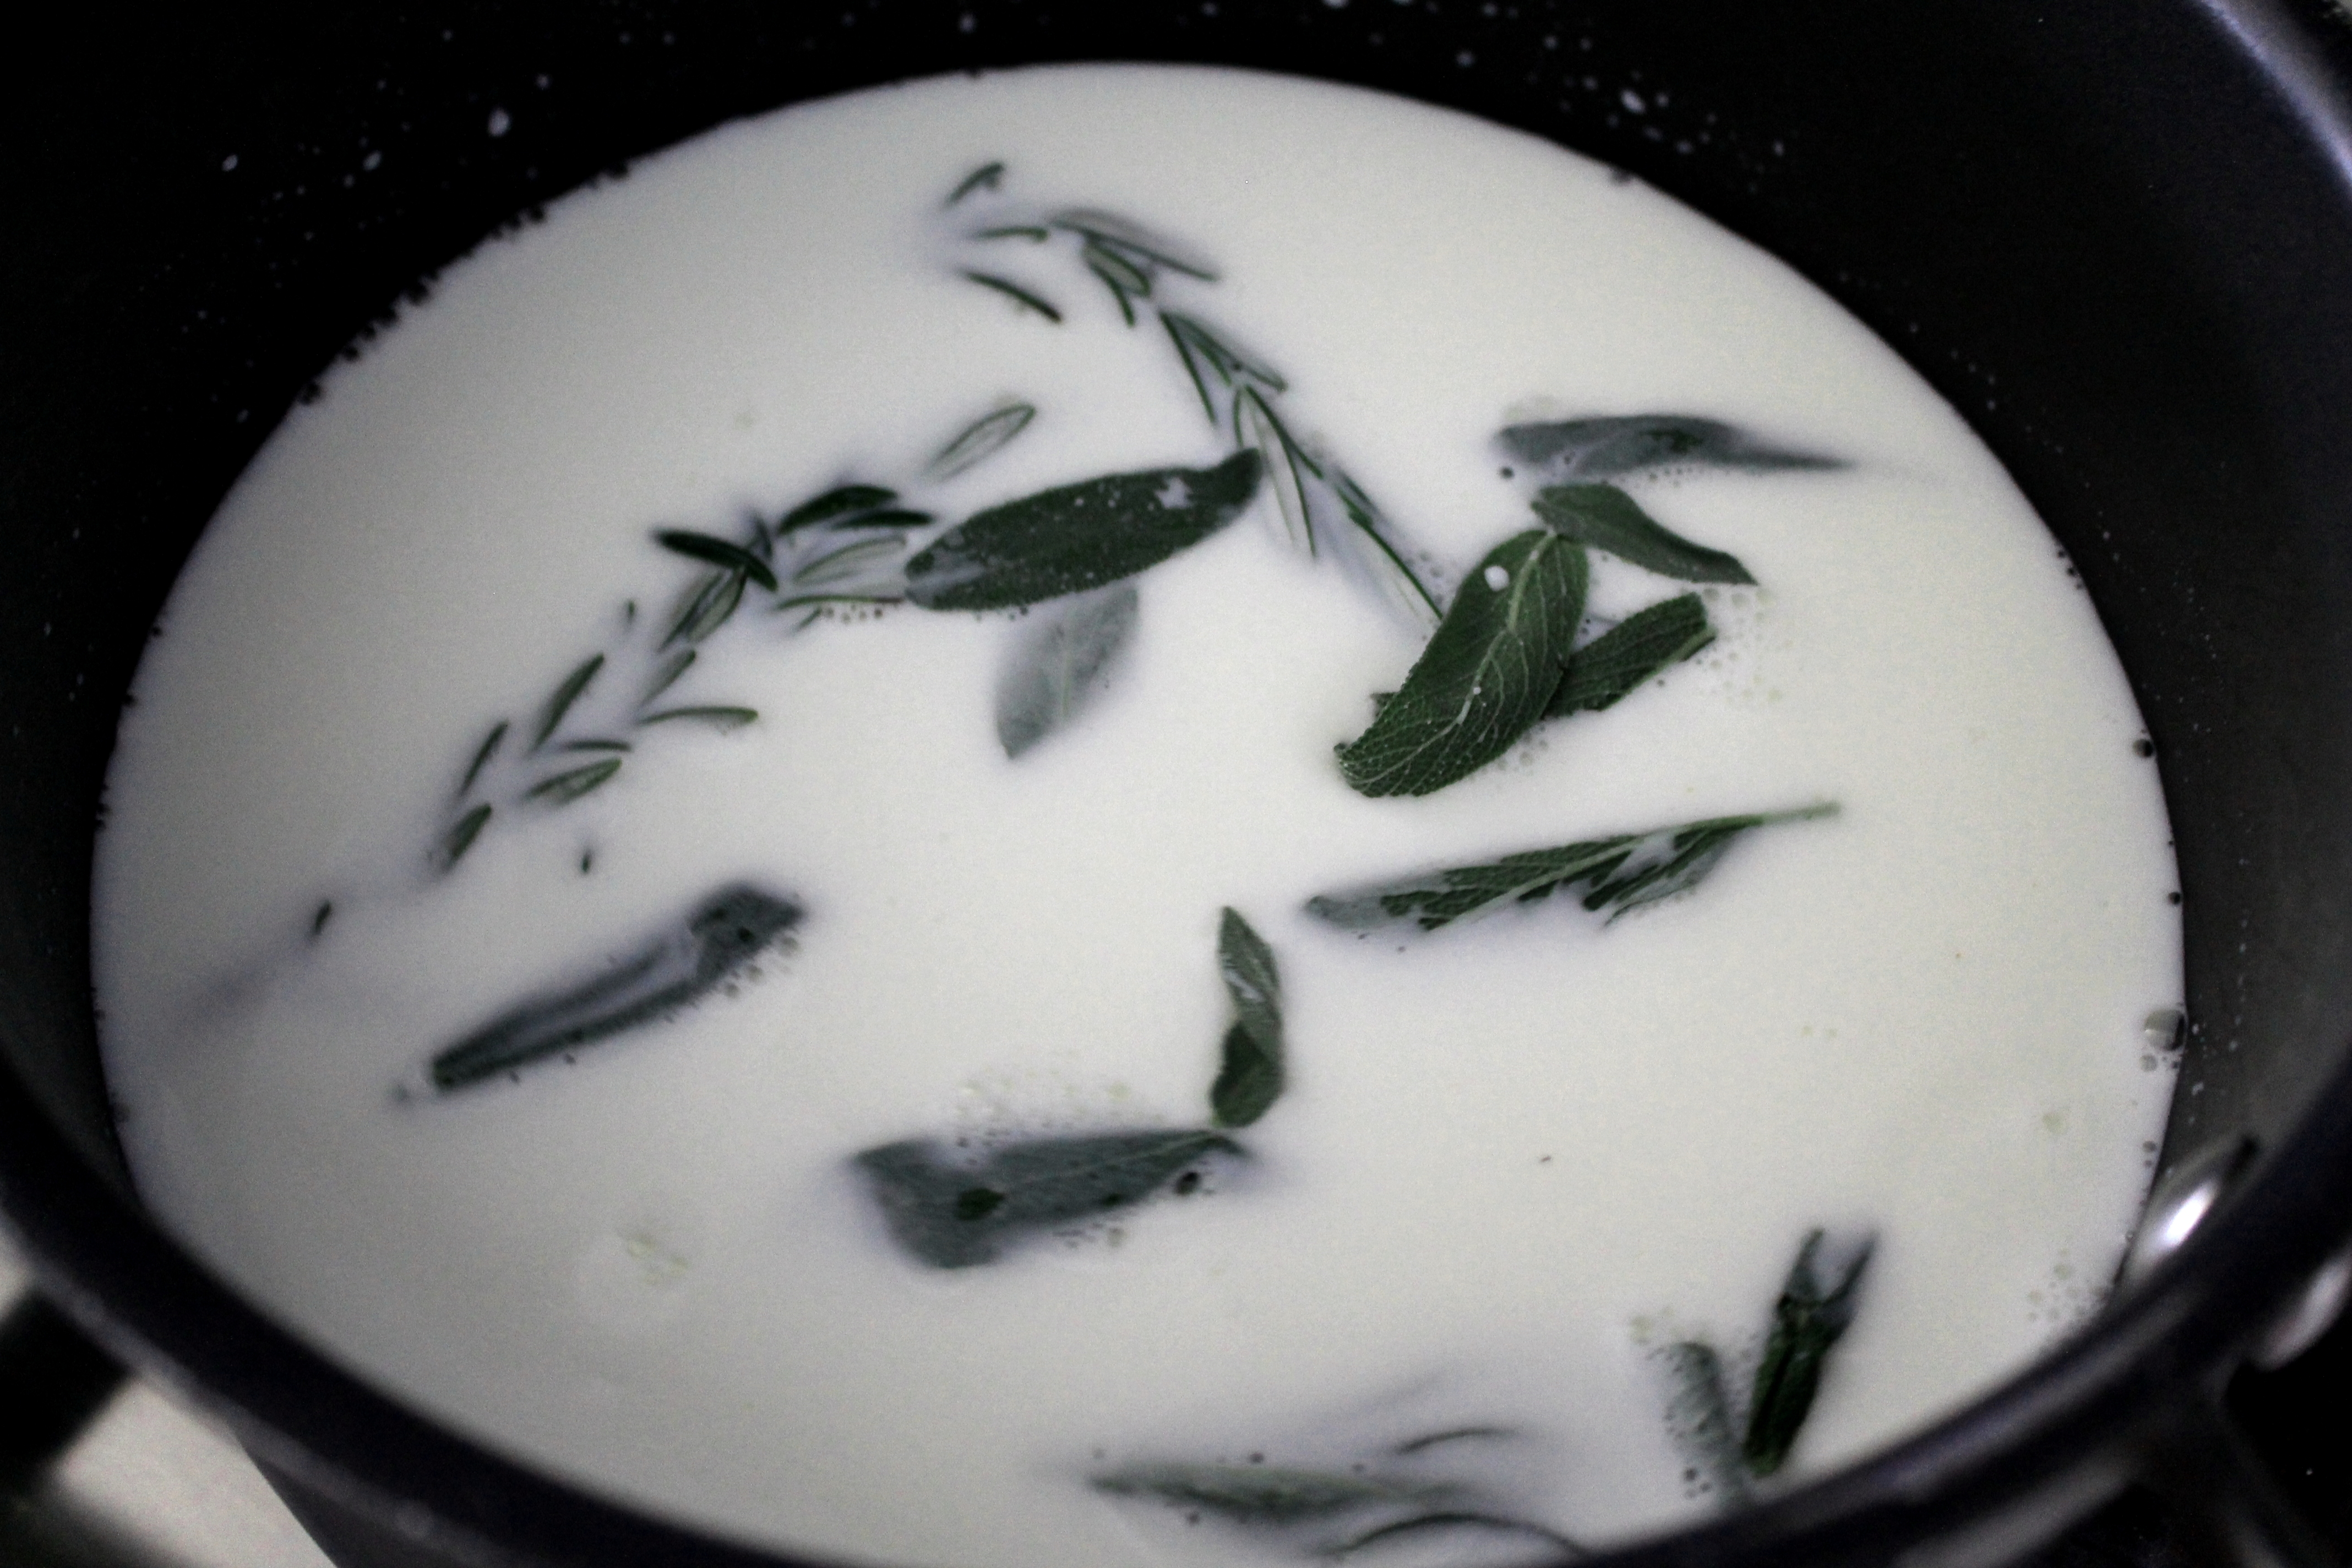 Herbs in Milk